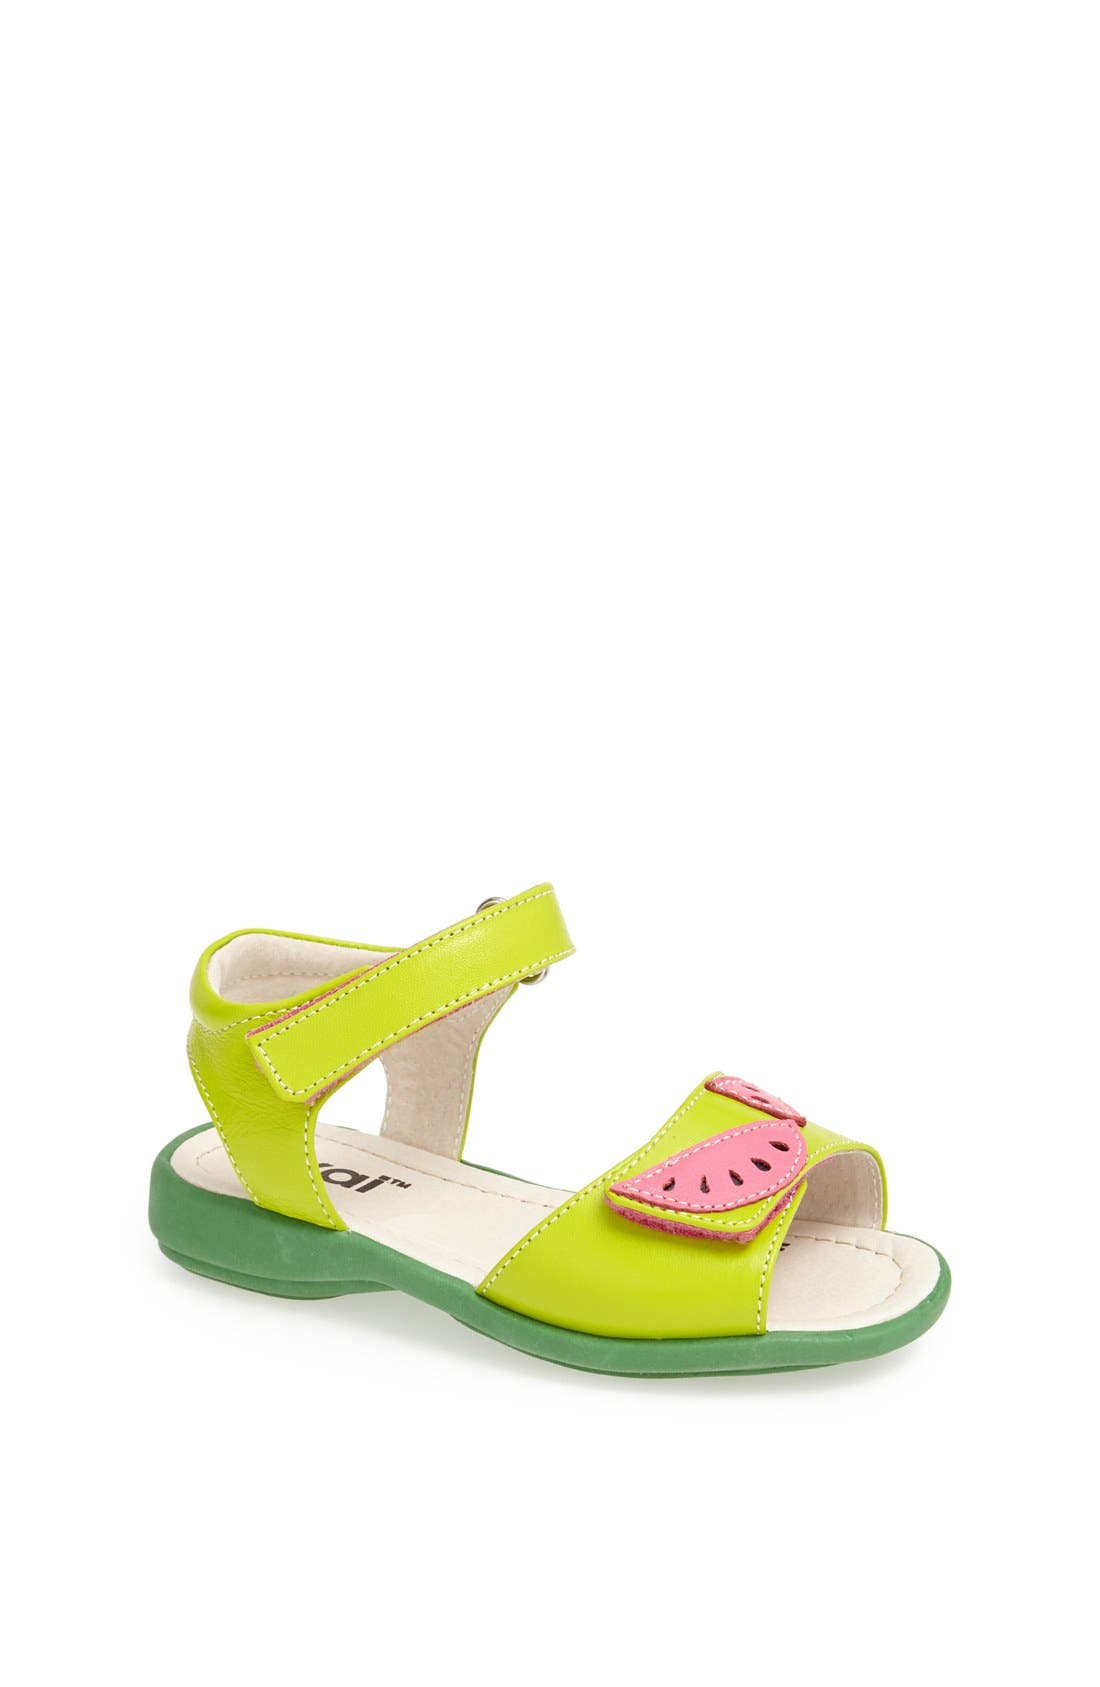 Main Image - See Kai Run 'Alexis' Sandal (Toddler & Little Kid)